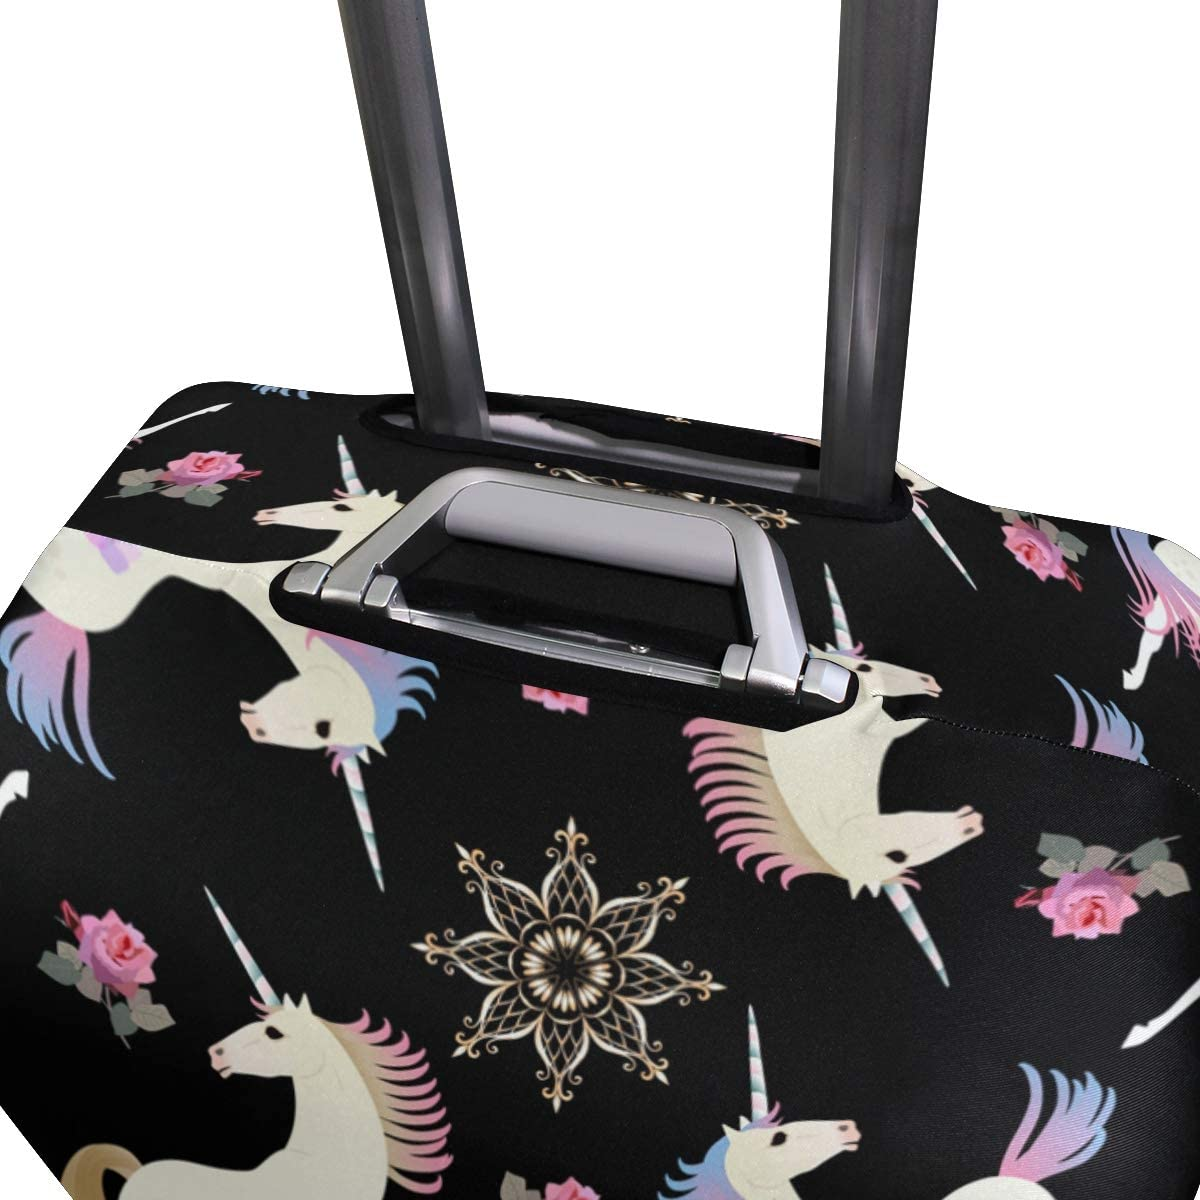 FOLPPLY Unicorn Horse Rose Pattern Luggage Cover Baggage Suitcase Travel Protector Fit for 18-32 Inch